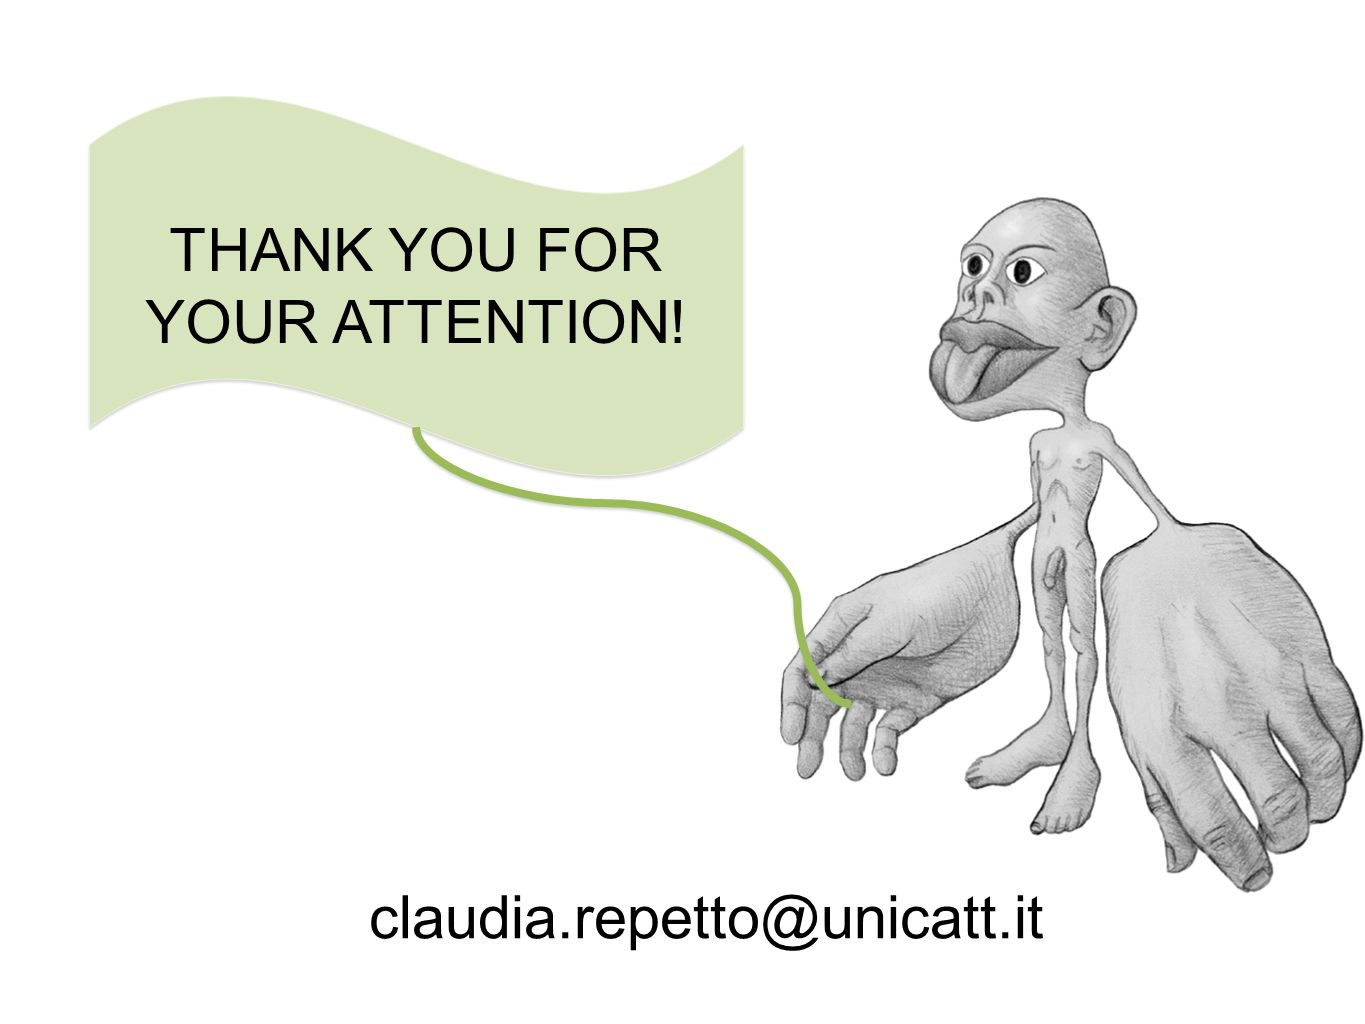 claudia.repetto@unicatt.it THANK YOU FOR YOUR ATTENTION!